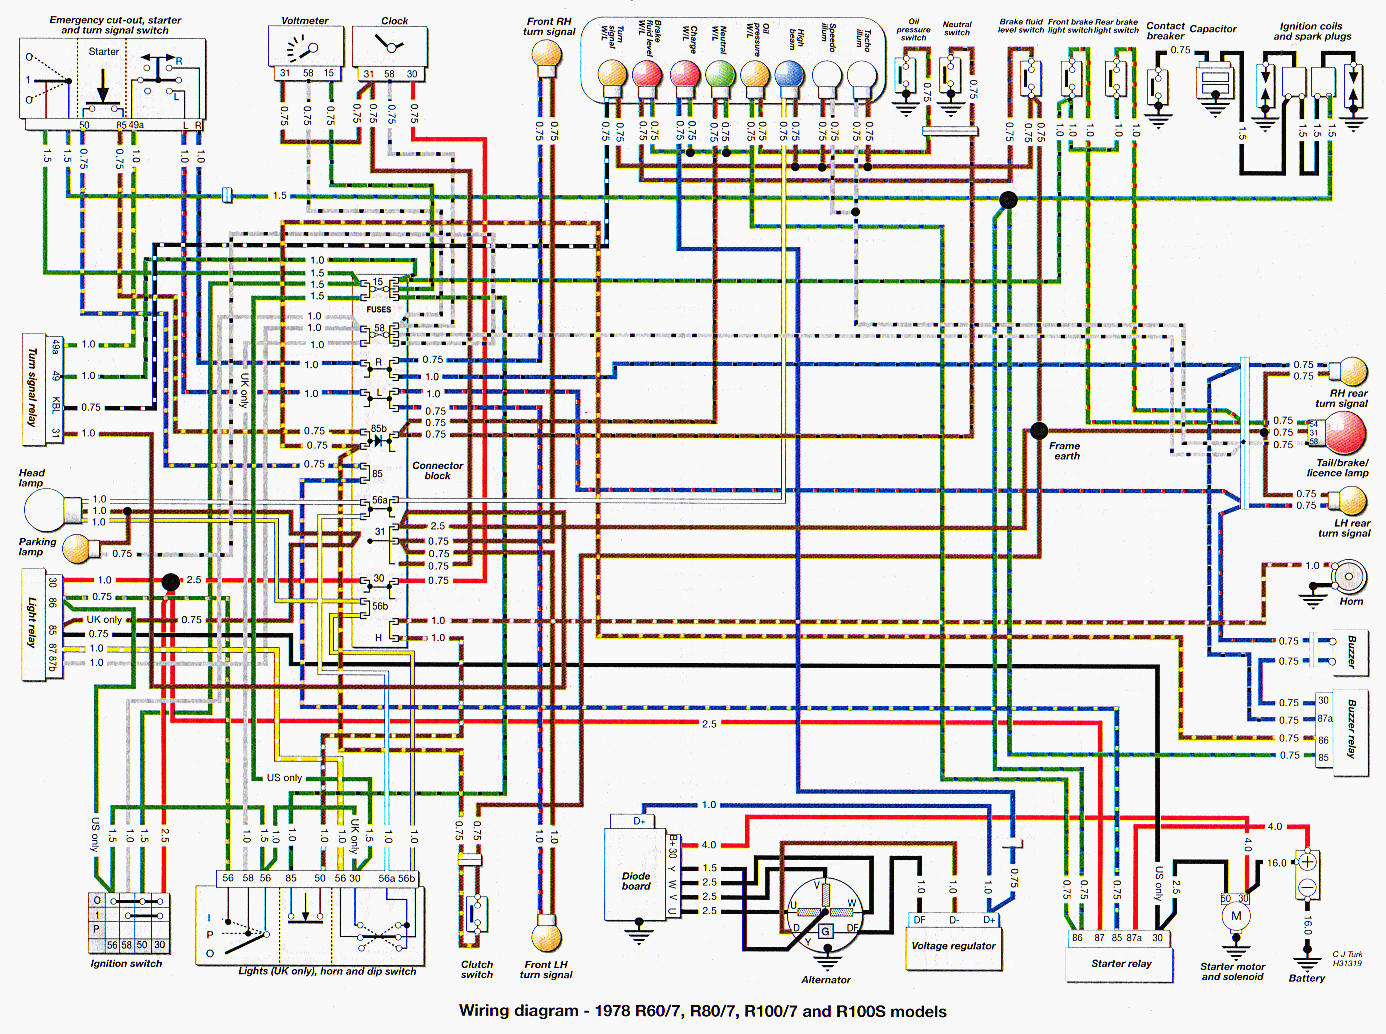 Bmw Wiring Diagram Color Codes | Bmw Electrical Wiring Diagrams |  | Wiring Diagram